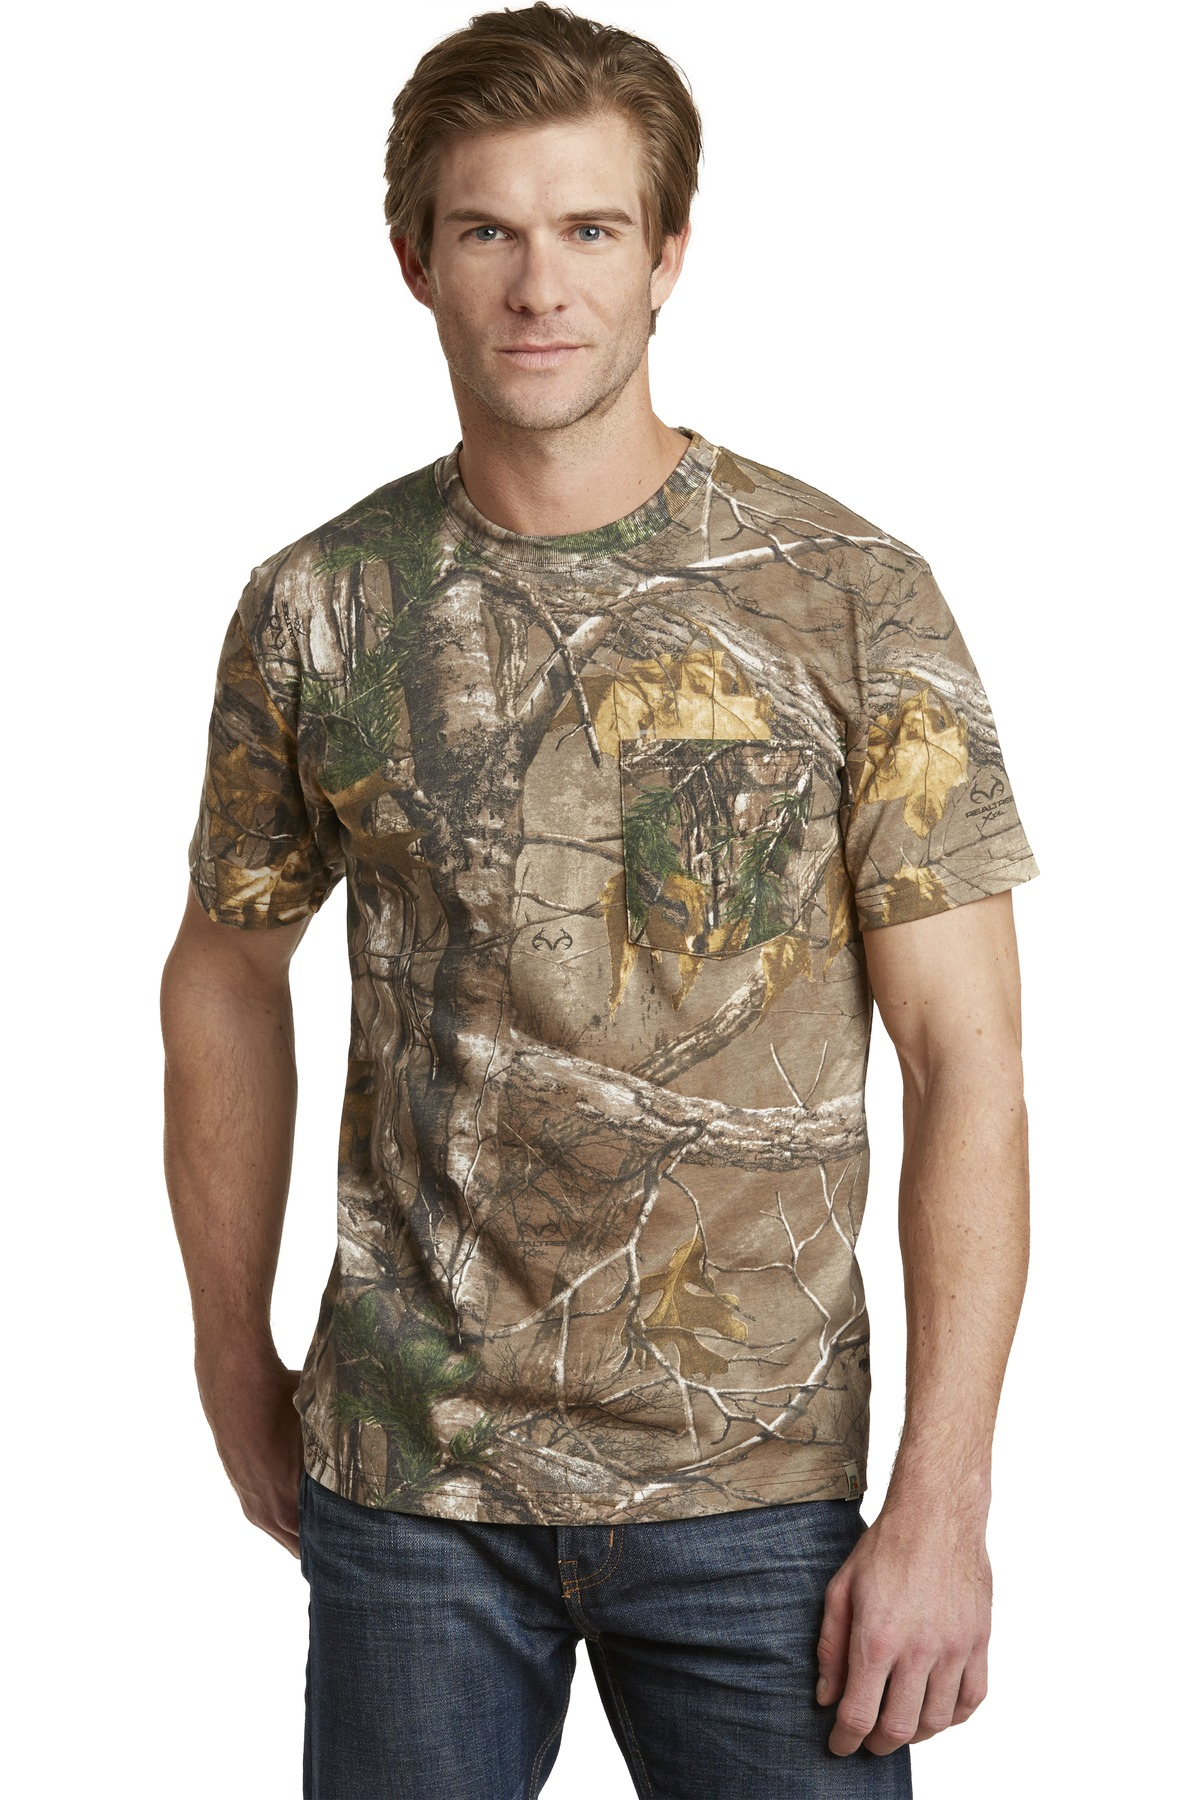 Russell Outdoors ™  - Realtree ®  Explorer 100% Cotton T-Shirt with Pocket. S021R - Realtree Xtra